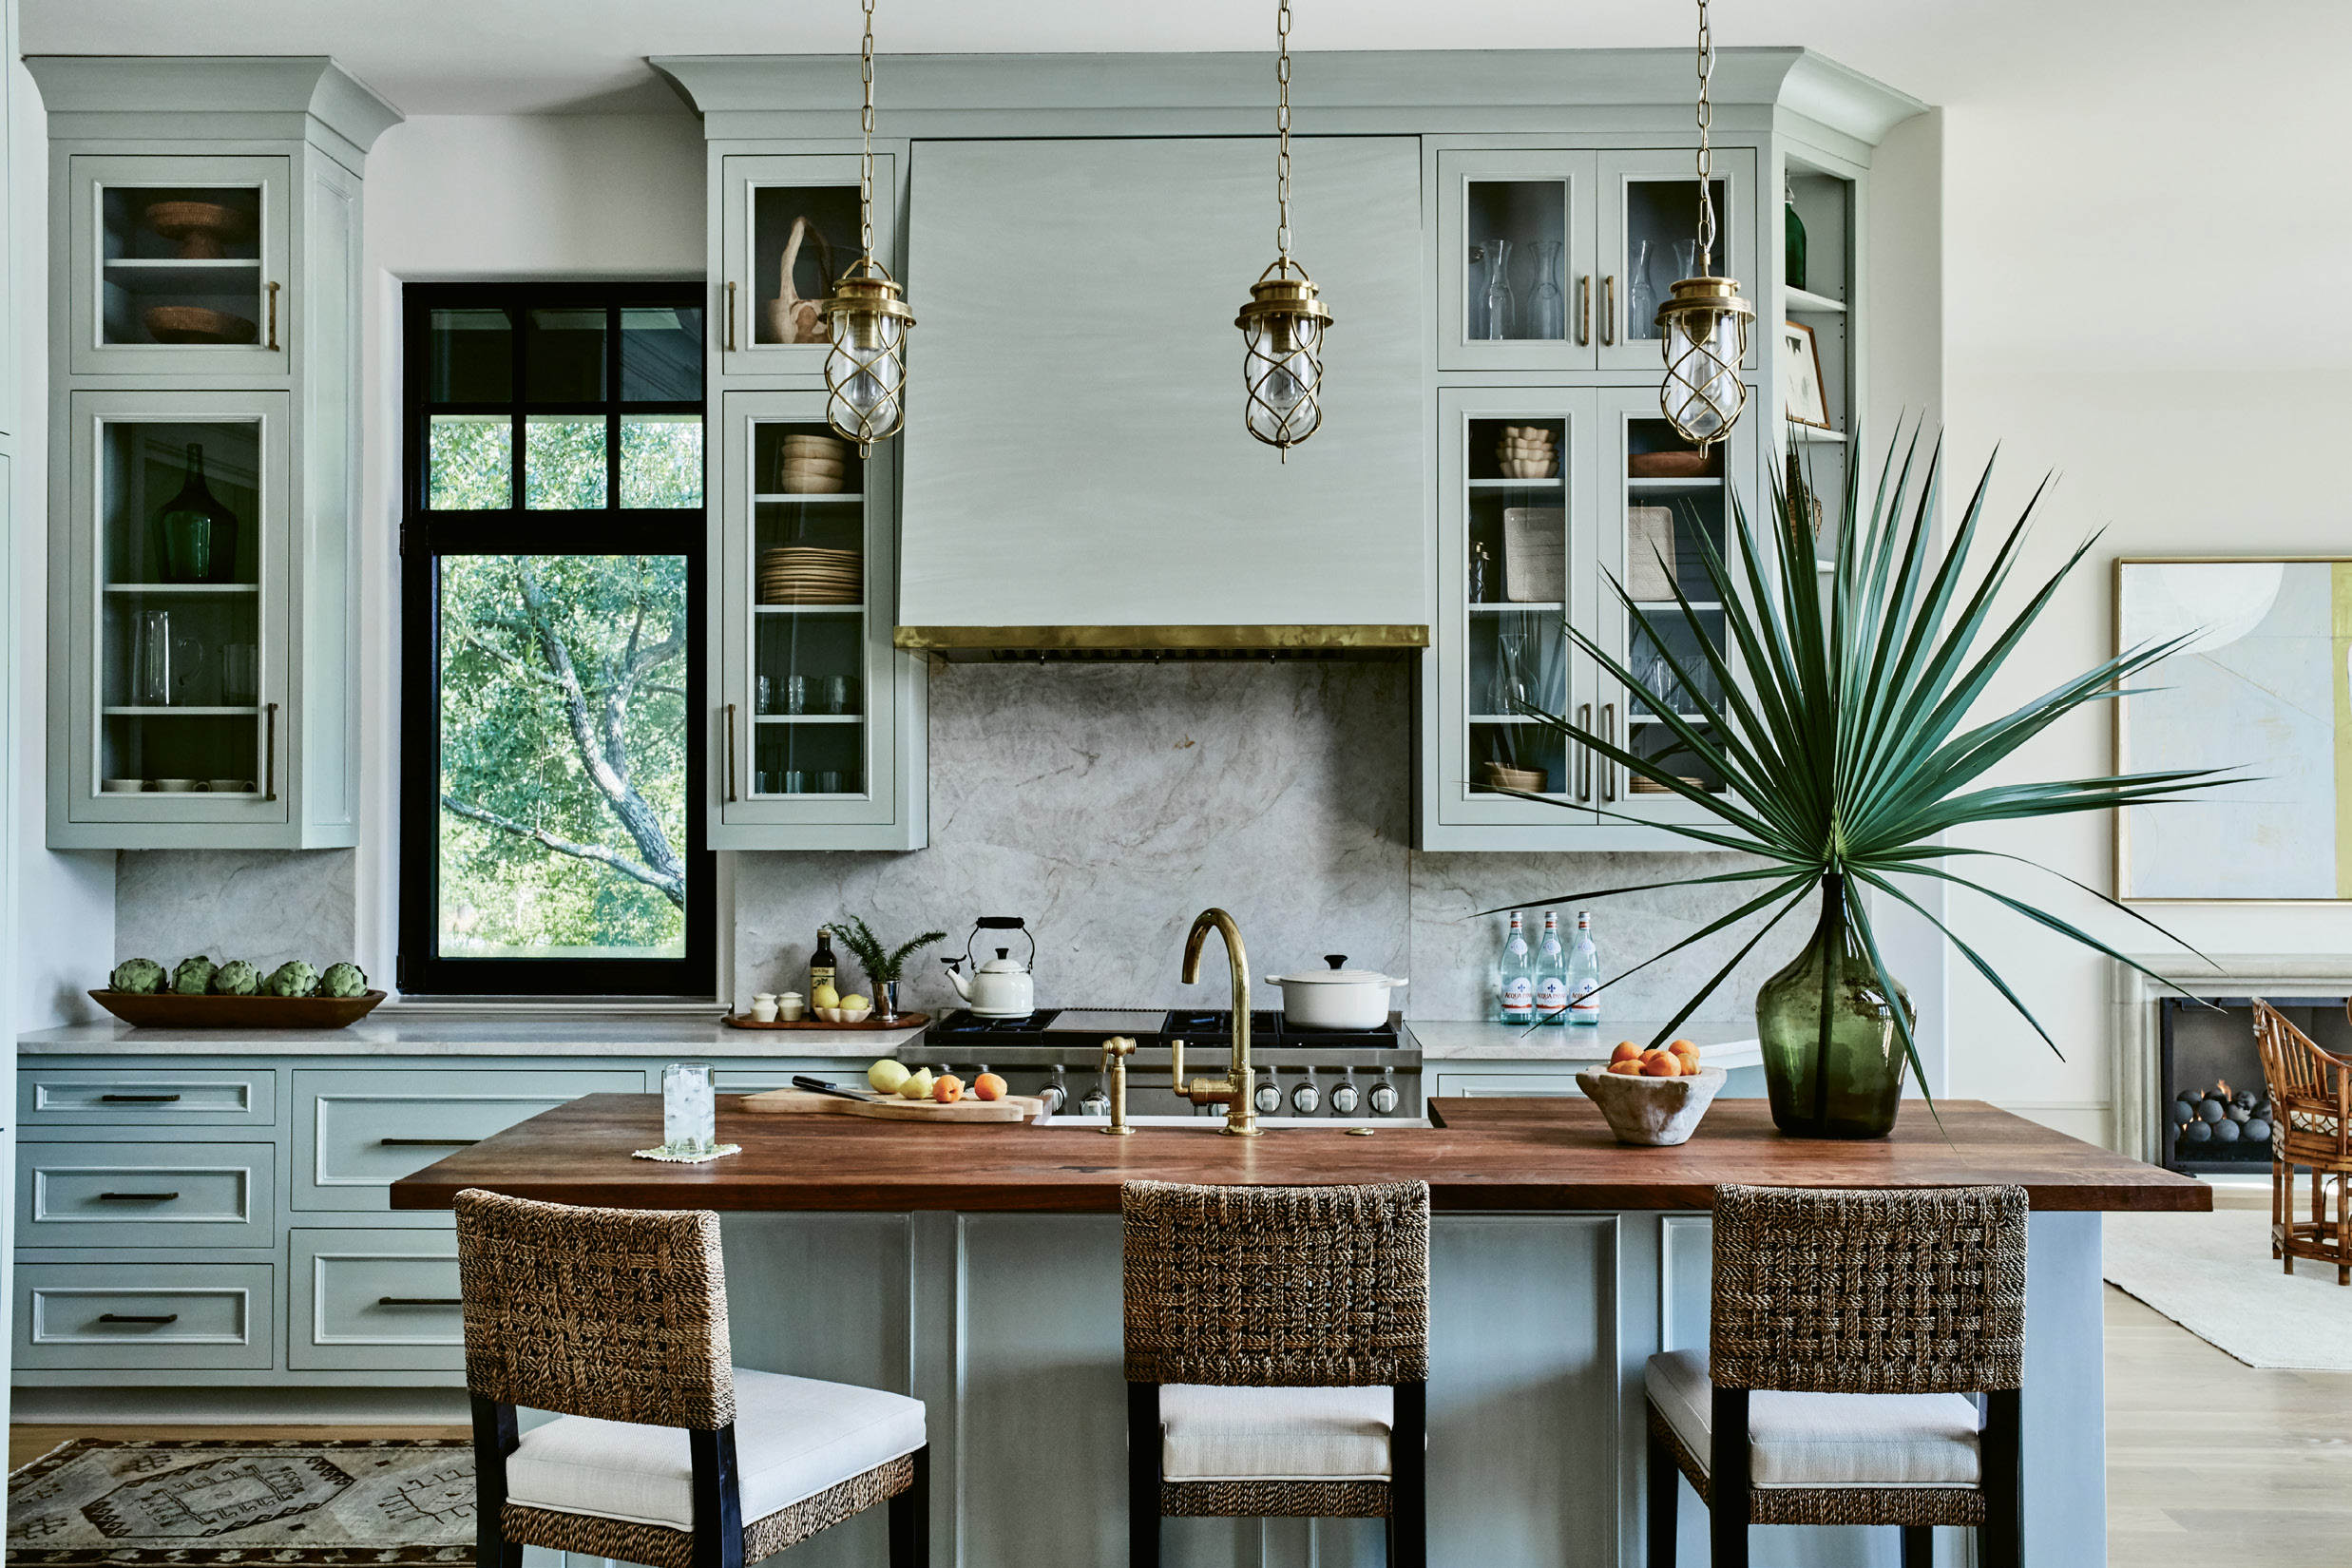 "WARM & INVITING: Brass accents—the faucet, pendant lighting, and custom trim around the hood—continue in the kitchen. ""It complements the soft sage-green cabinetry and warms up the space,"" says interior designer Charlotte Lucas. She chose quartzite for the countertops and backsplash for its hue and durability and walnut to top the island for additional warmth and interest."